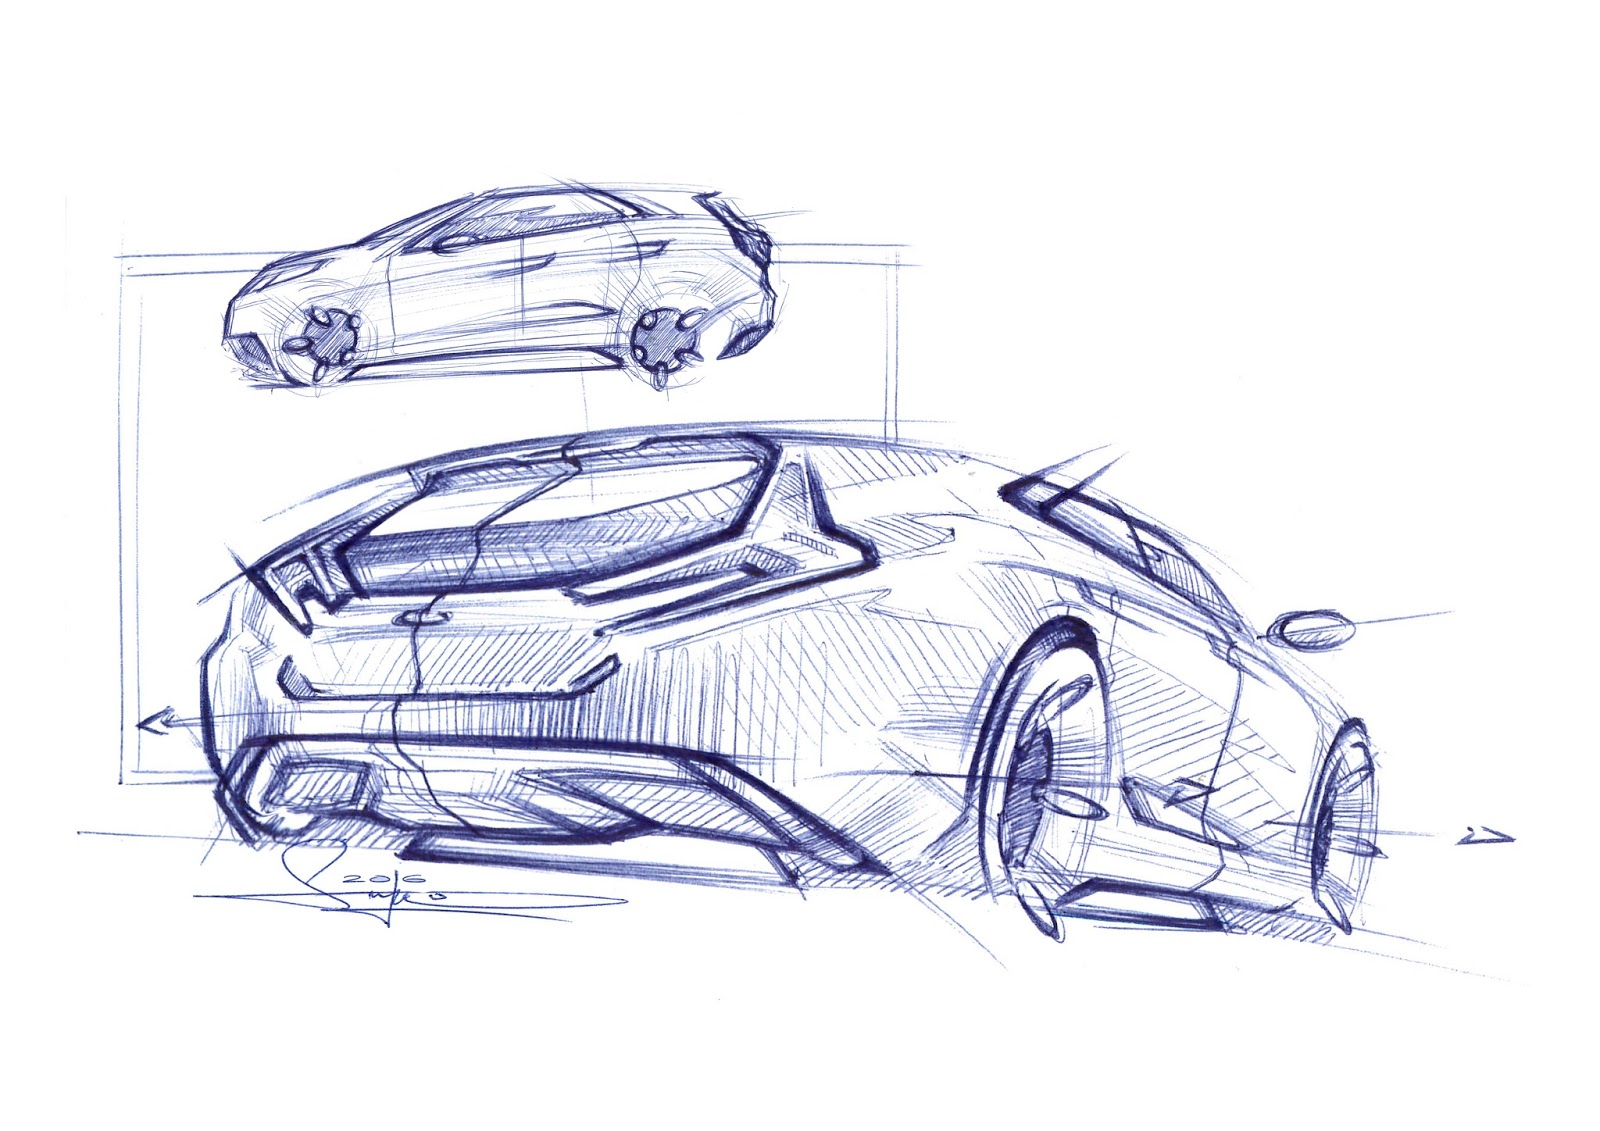 Simon Larsson - Sketchwall: Car Sketch step by step guide